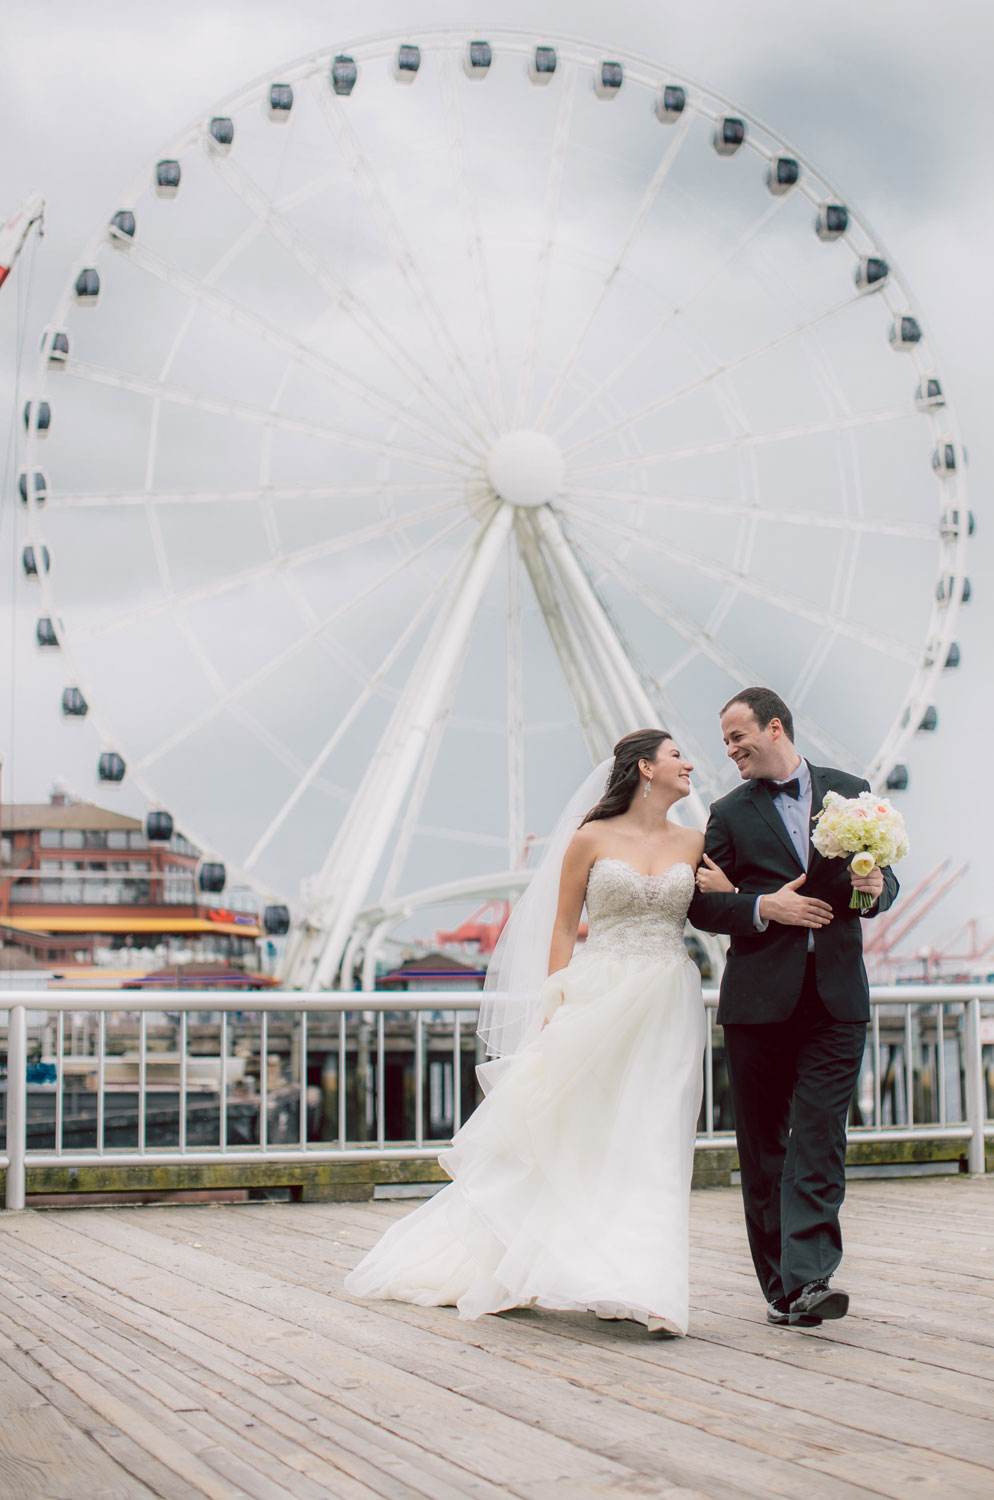 four-seasons-seattle-wedding-clane-gessel-photos-18